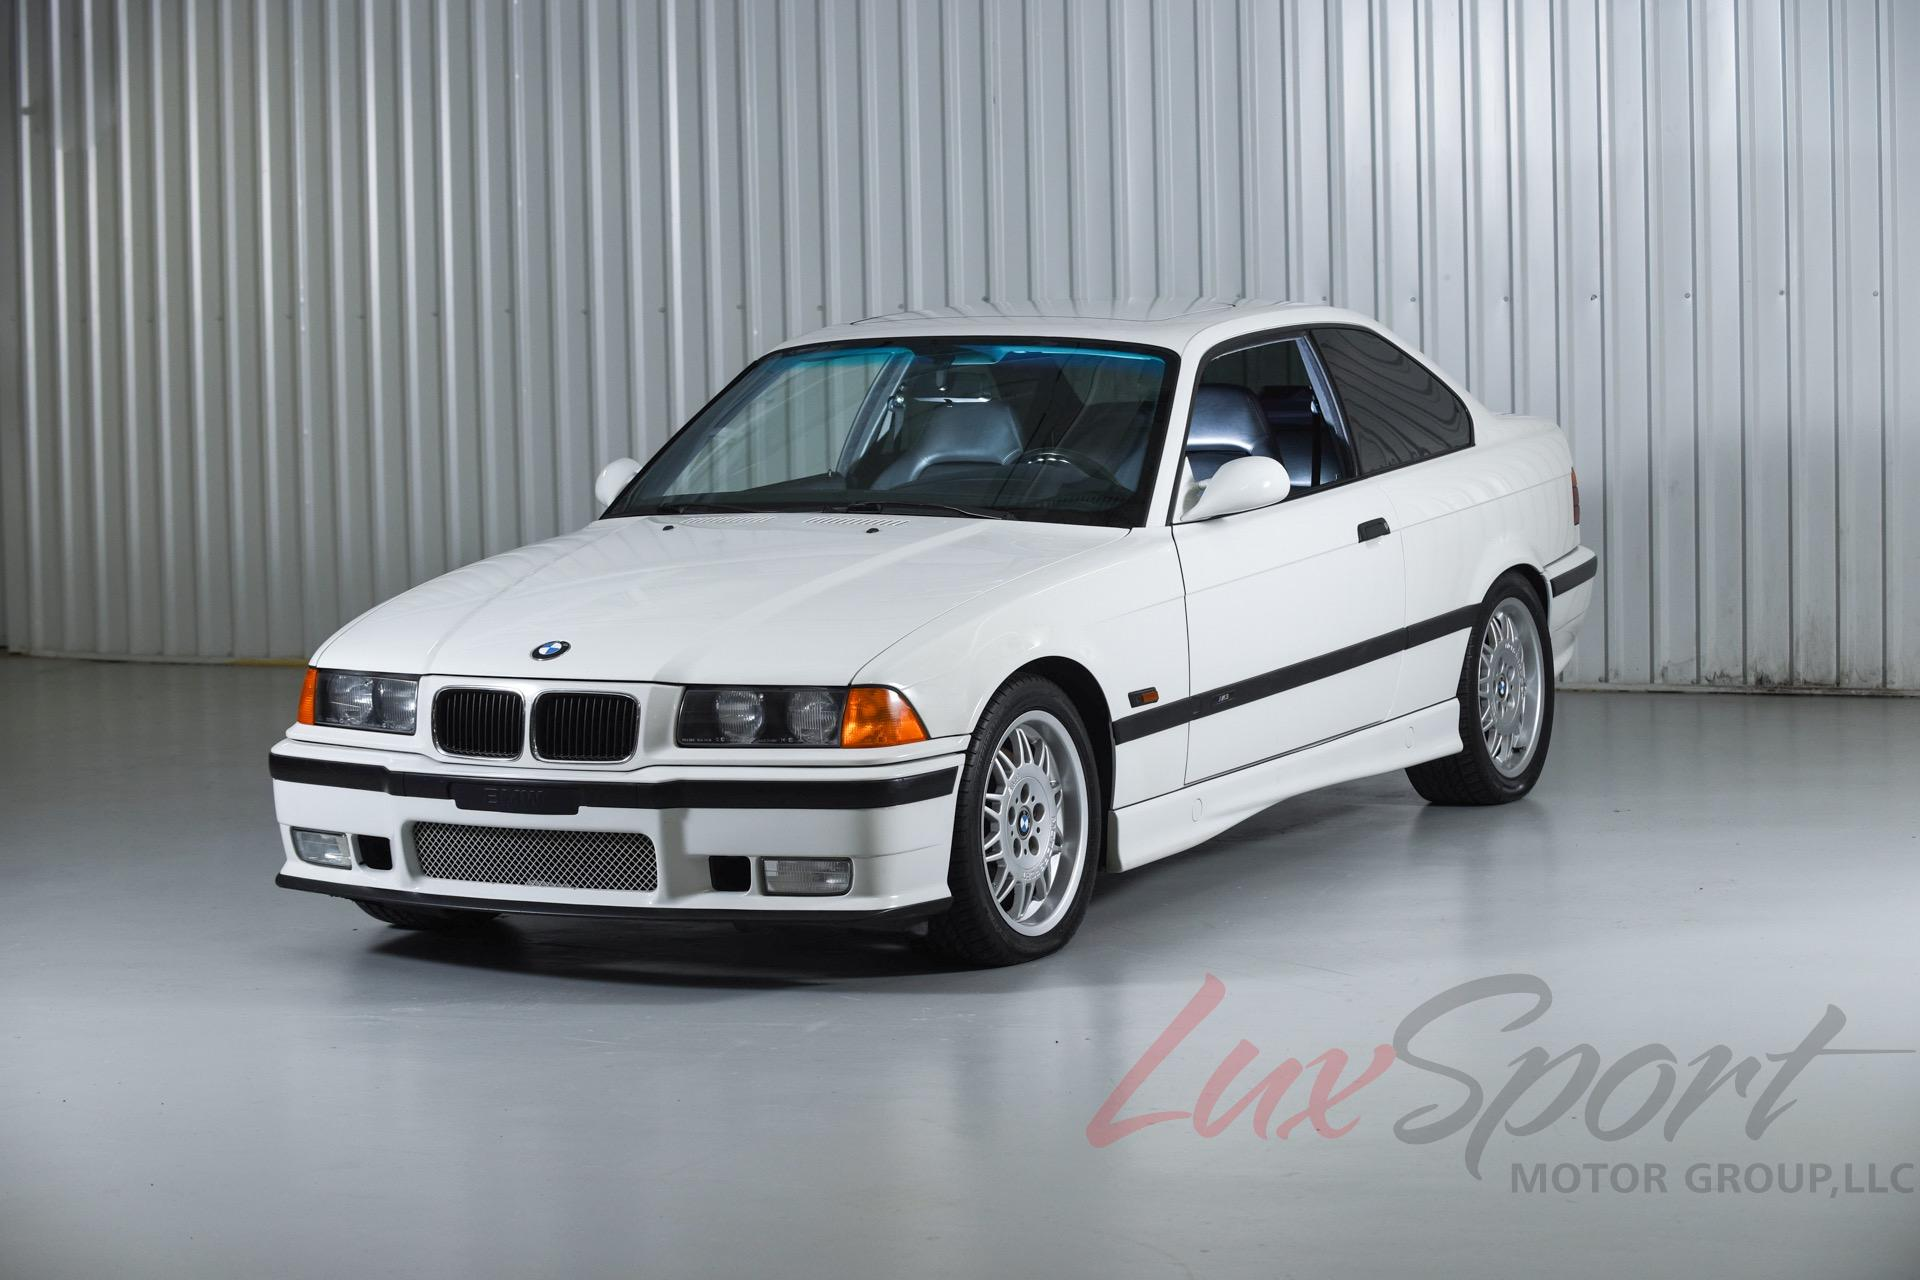 1995 bmw m3 coupe stock 1995157 for sale near new hyde park ny ny bmw dealer. Black Bedroom Furniture Sets. Home Design Ideas